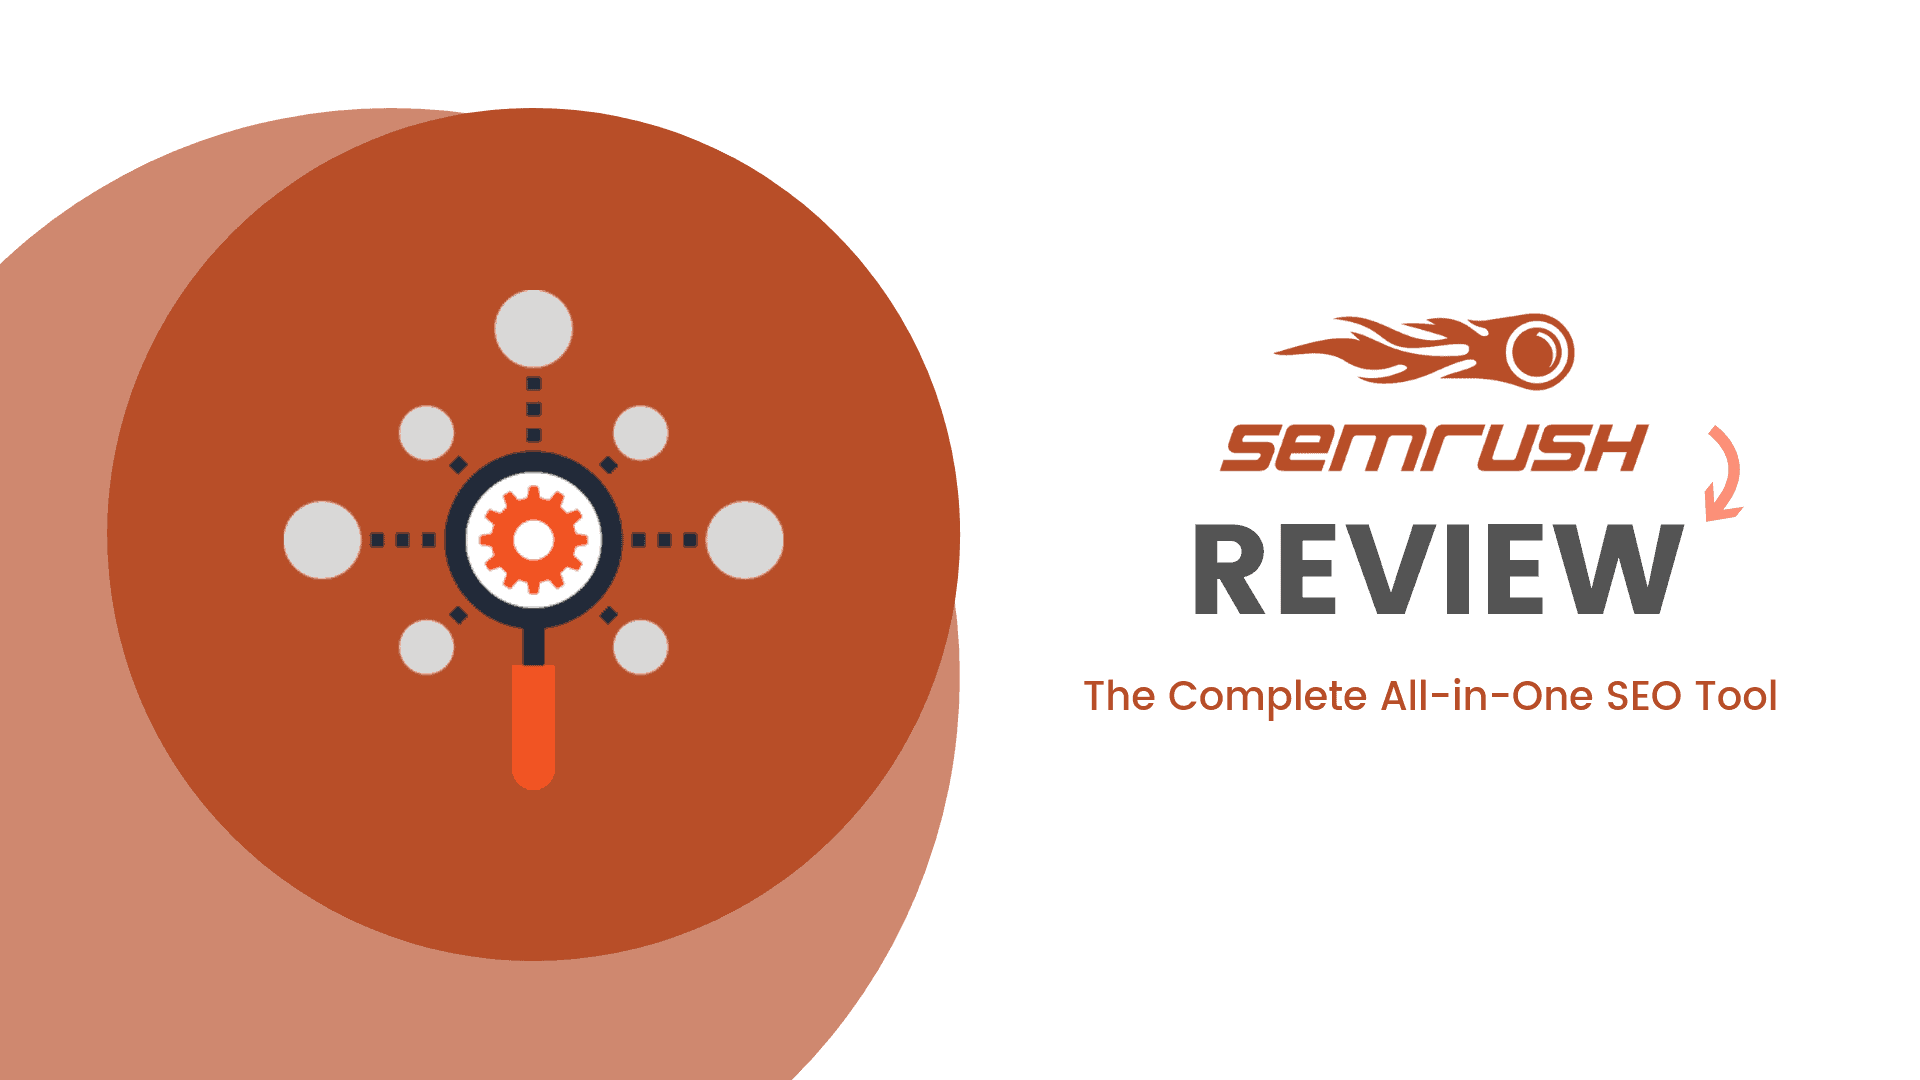 Retailers Seo Software Semrush